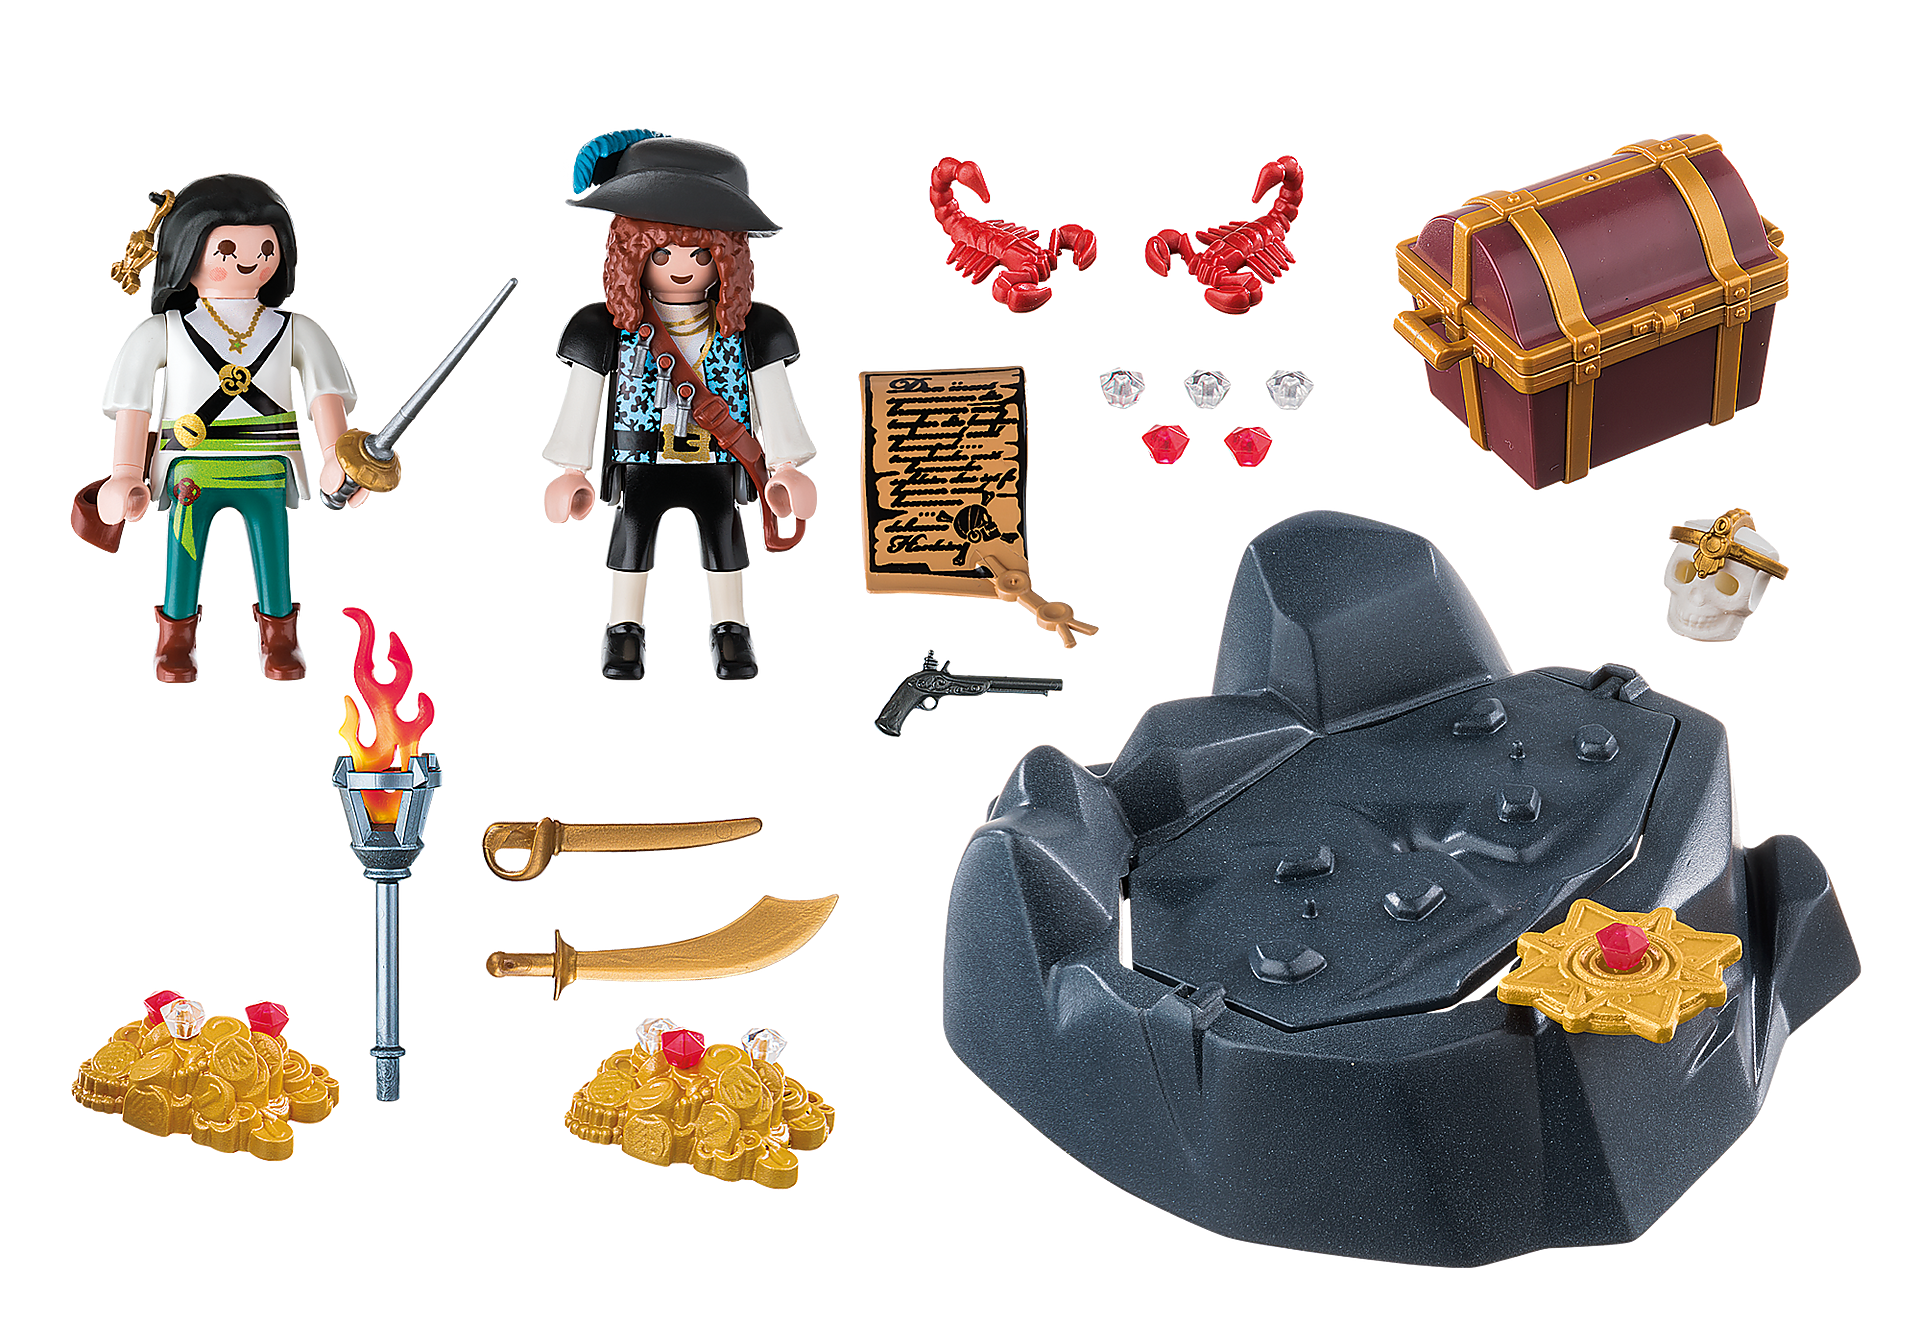 6683 Pirate Treasure Hideout zoom image3